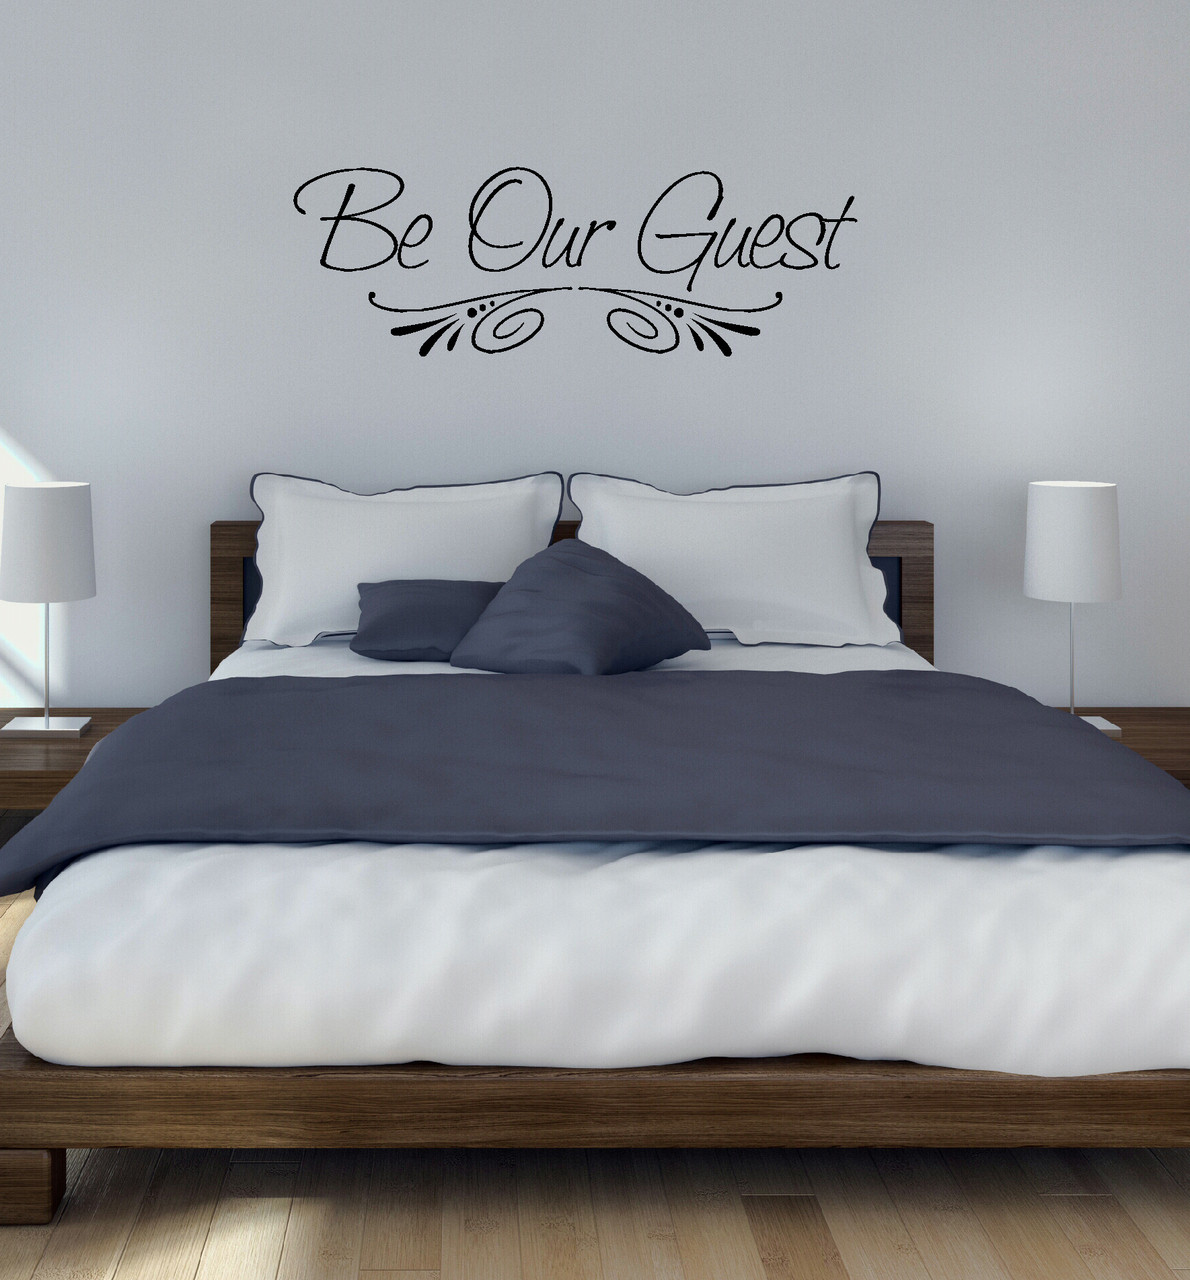 Be our guest wall decal sticker for home decor guest room wall decal sticker for wall decor black loading zoom amipublicfo Image collections